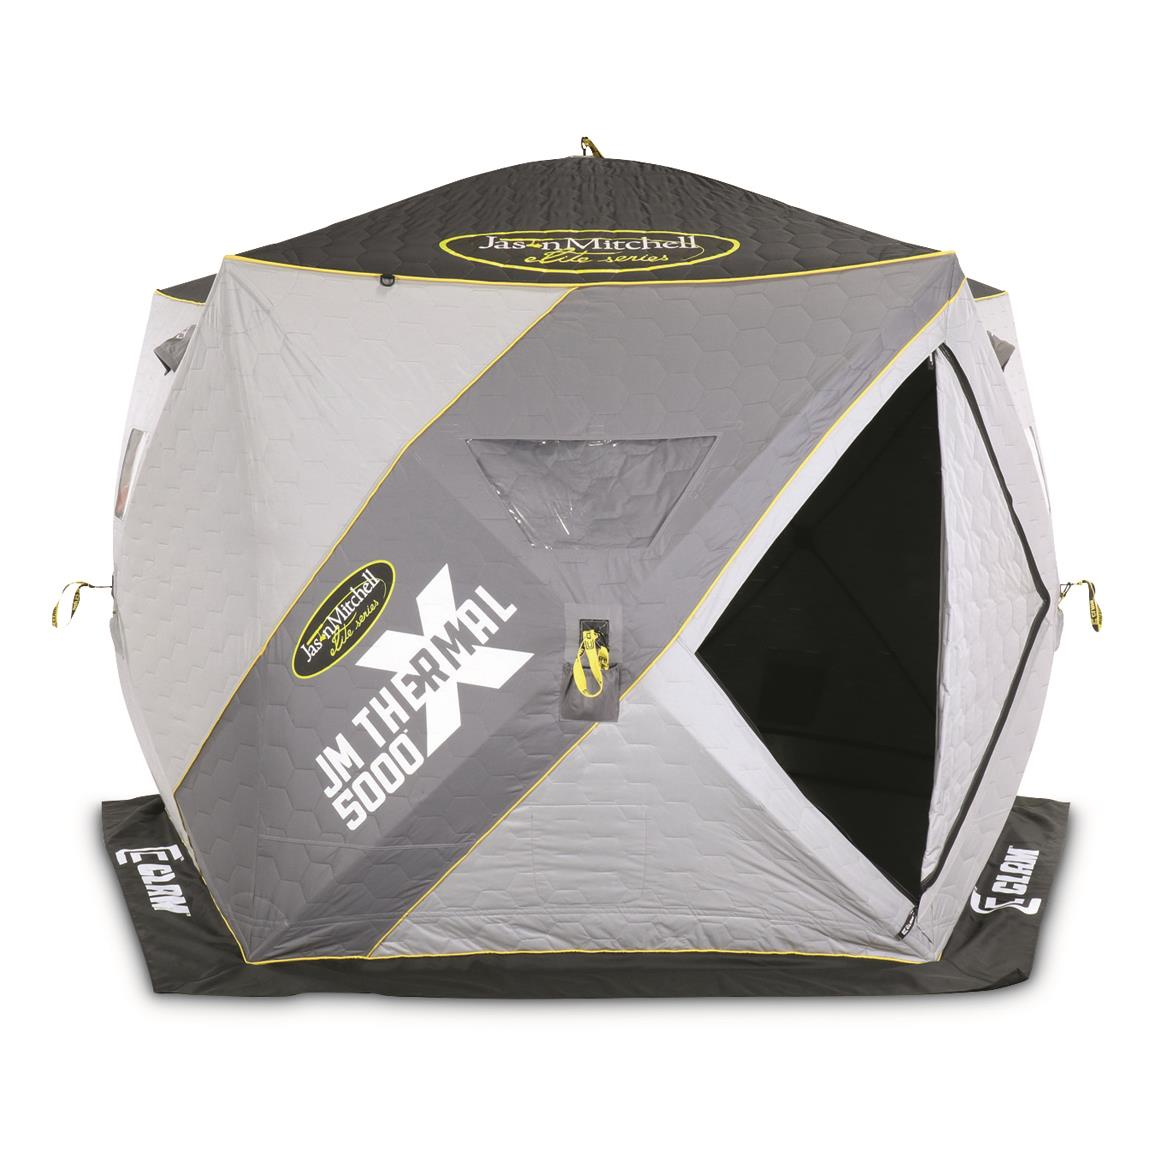 Clam JM X5000 Thermal Ice Shelter